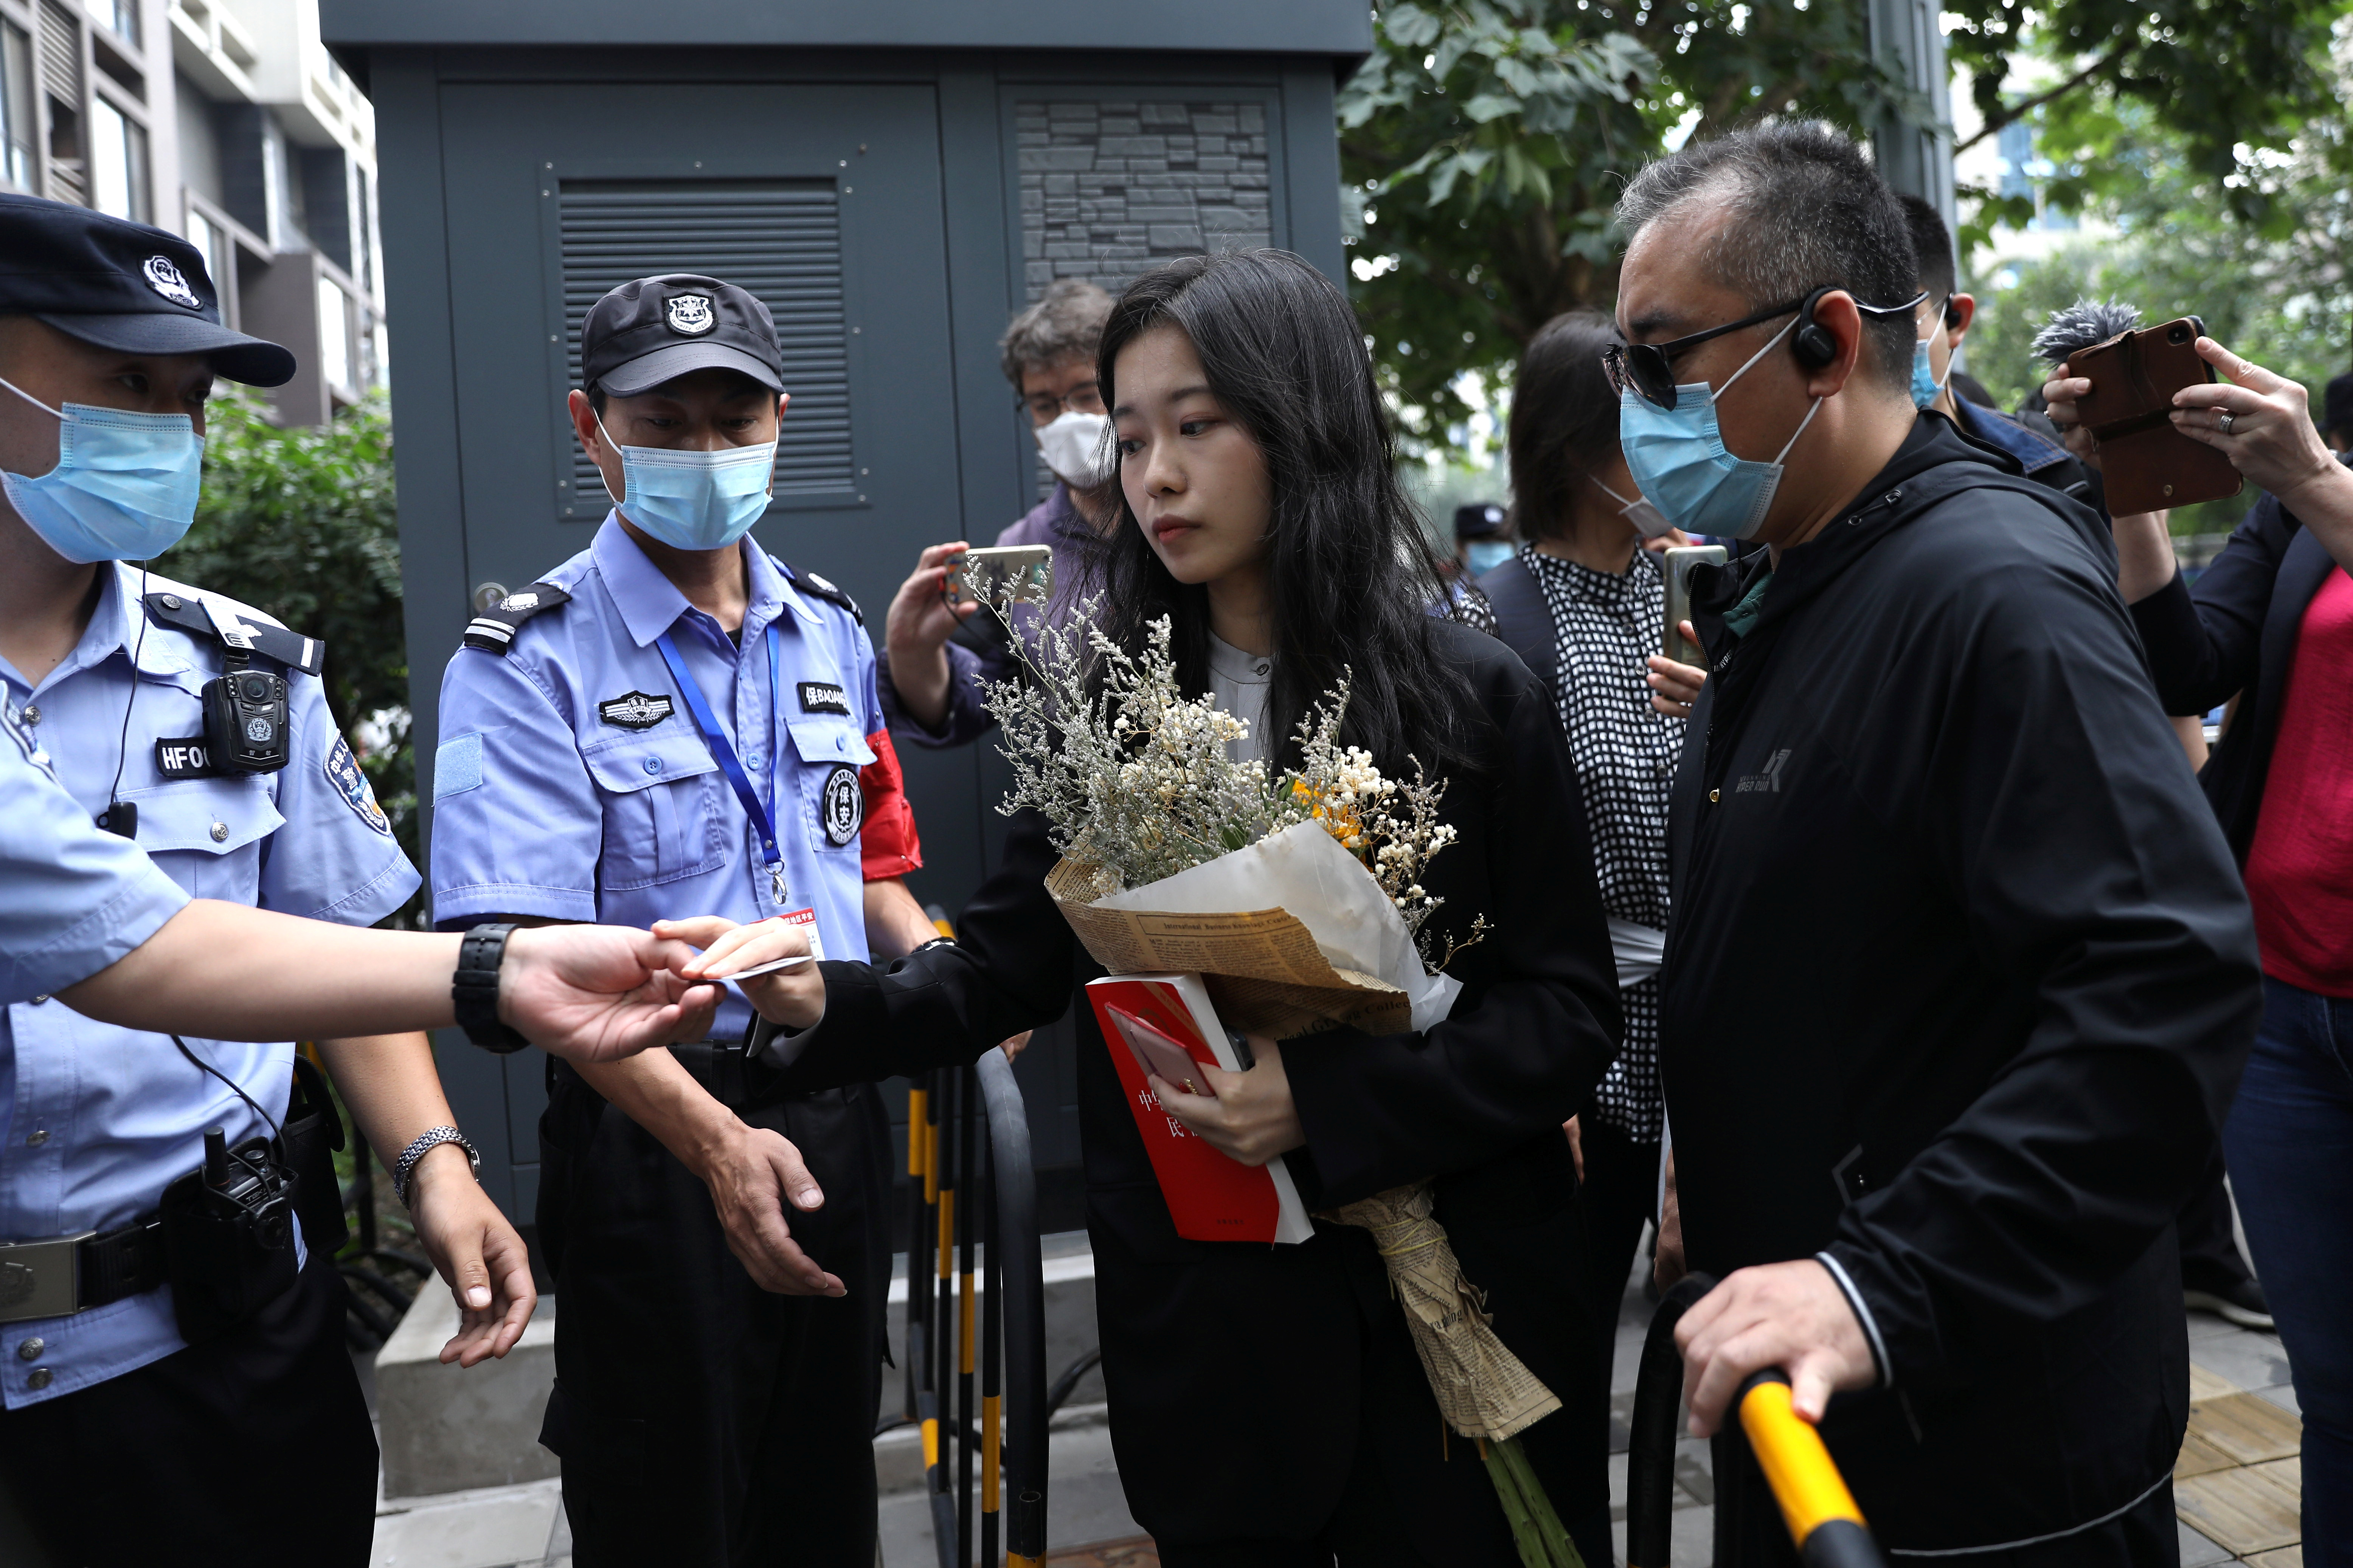 Zhou Xiaoxuan, also known by her online name Xianzi, has her identity card checked as she arrives at a court for a sexual harassment case involving a Chinese state TV host, in Beijing, China September 14, 2021. REUTERS/Tingshu Wang